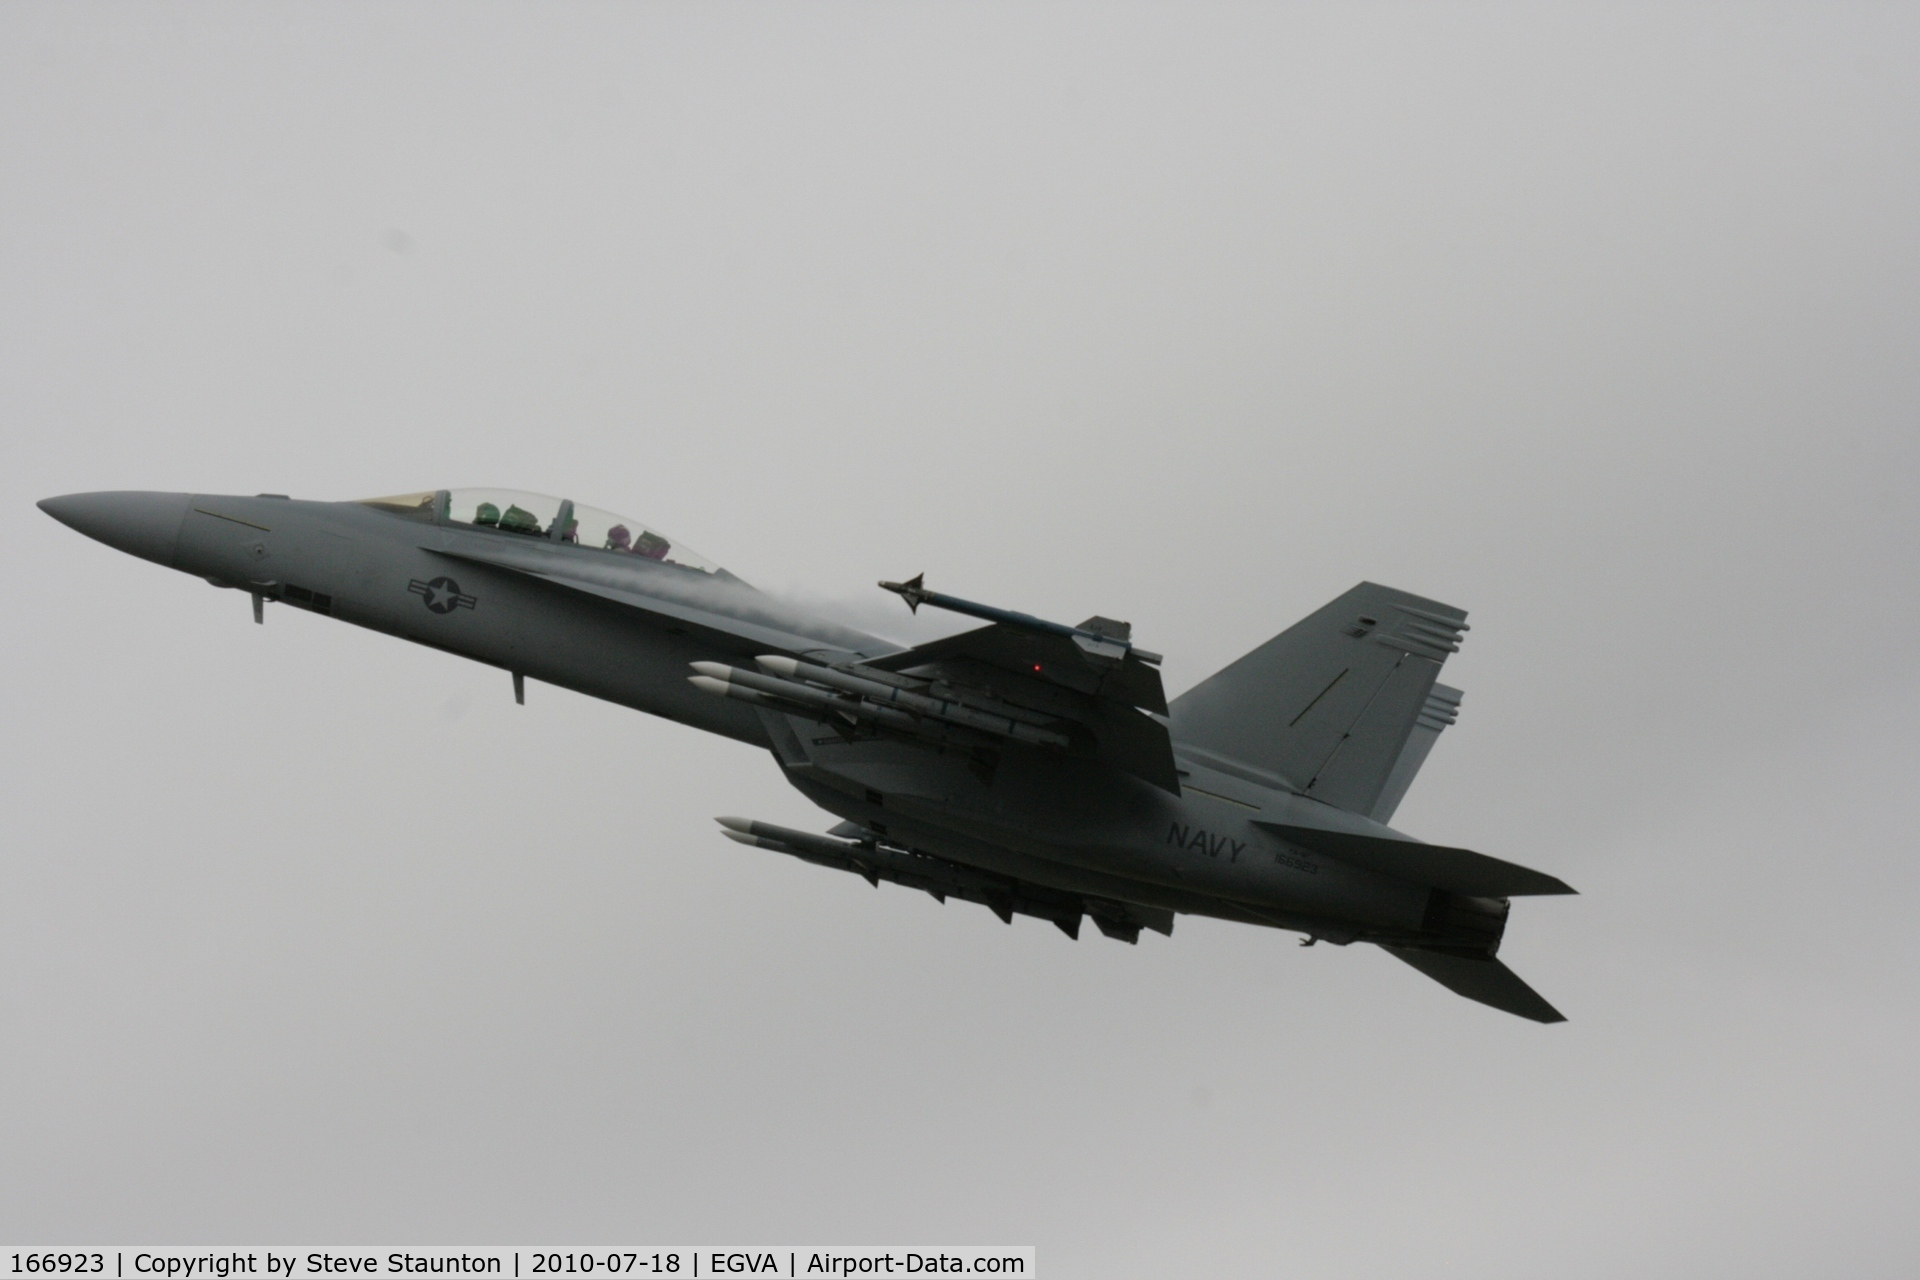 166923, Boeing F/A-18F Super Hornet C/N F063, Taken at the Royal International Air Tattoo 2010